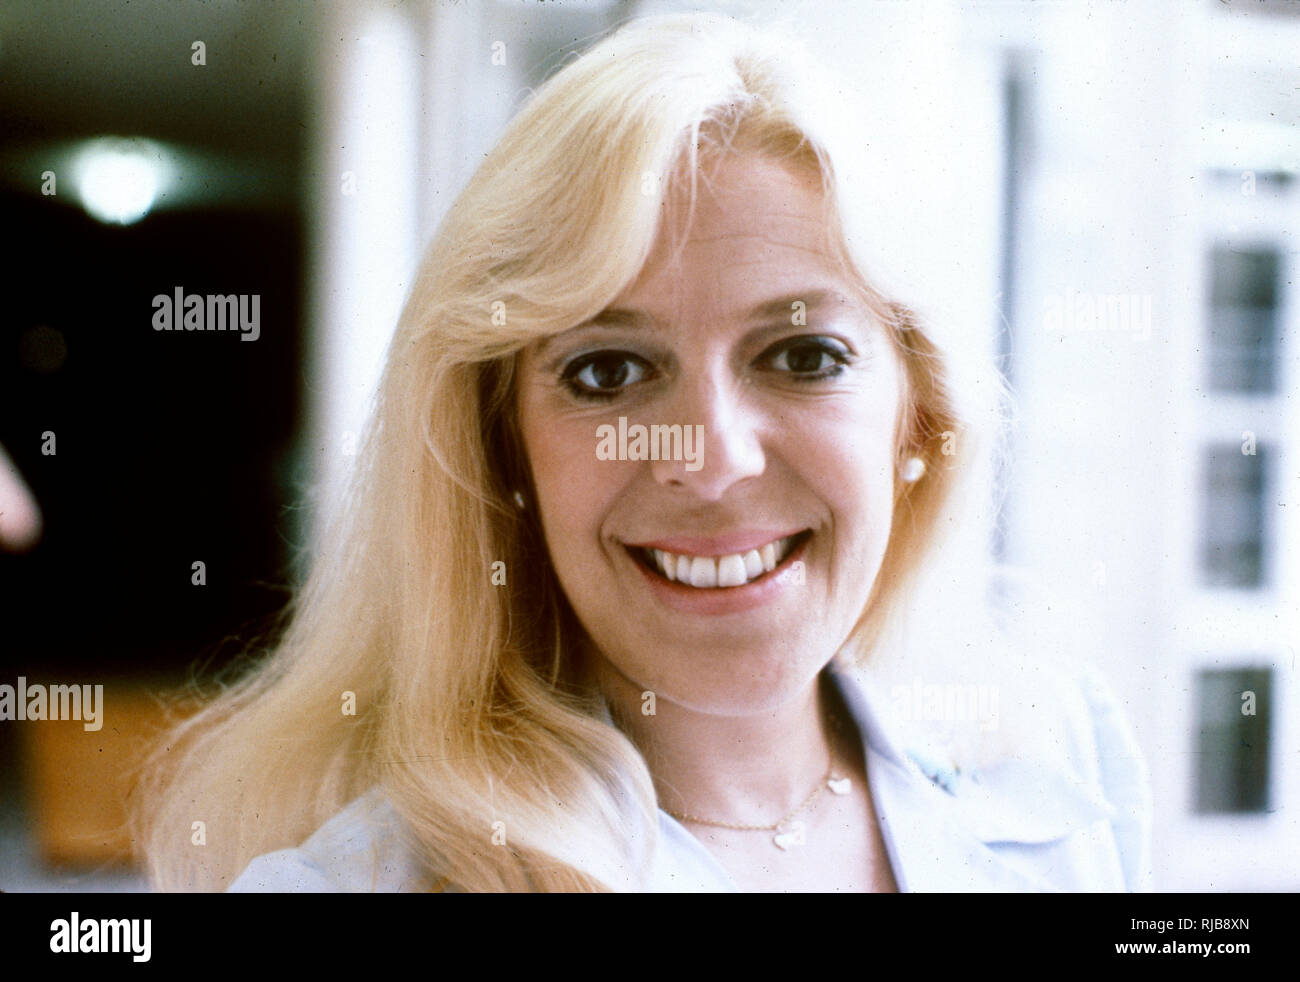 Julie Goodyear, MBE (1942-) - English television actress and media personality, best known for playing pub landlady Bet Lynch in the long-running British soap opera Coronation Street. - Stock Image